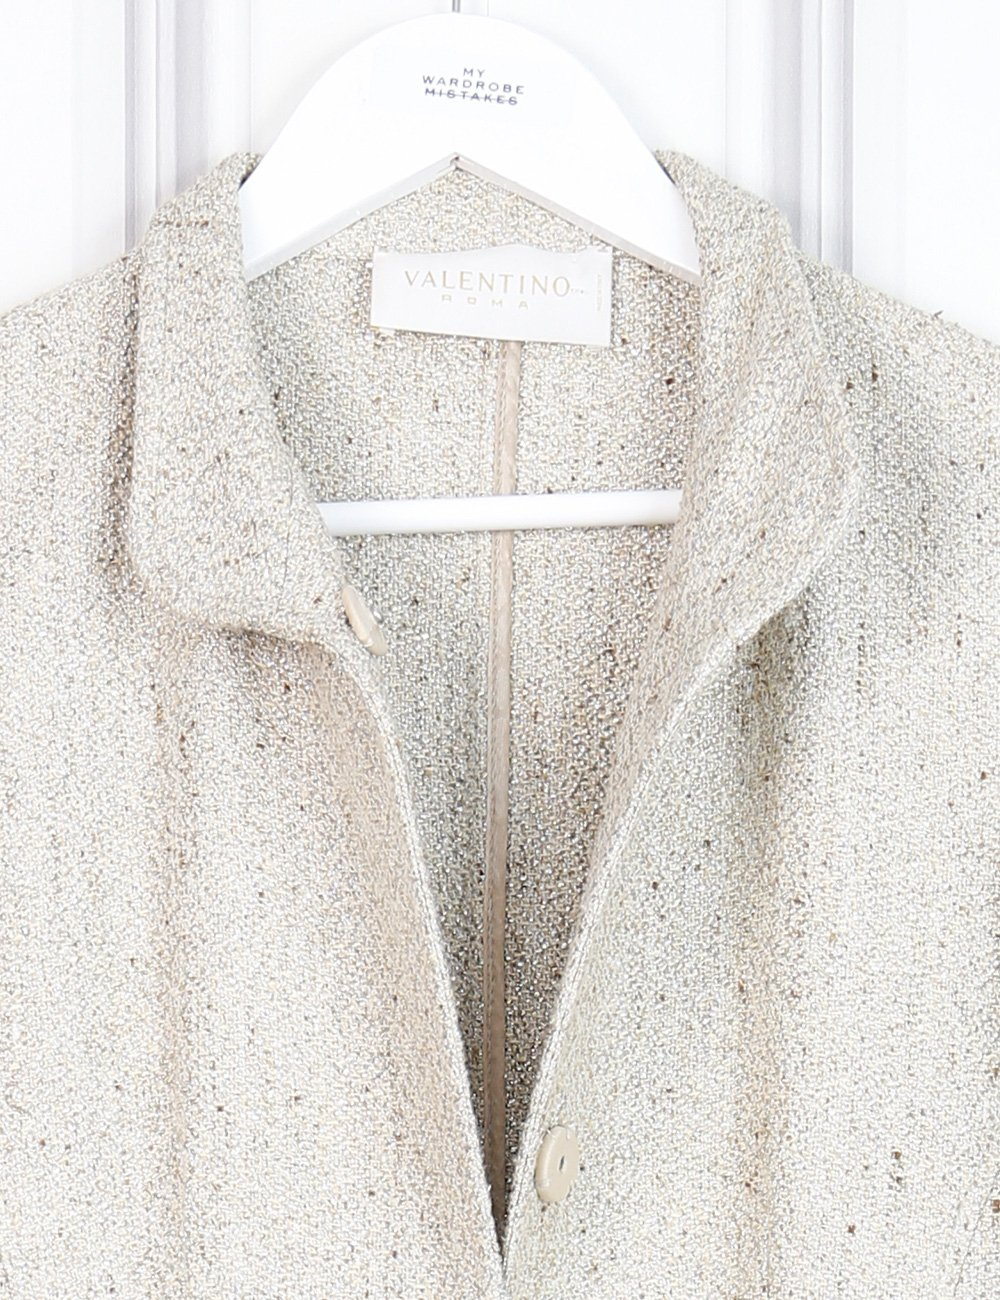 Valentino gold mid-length shimmery coat 12 UK- My Wardrobe Mistakes